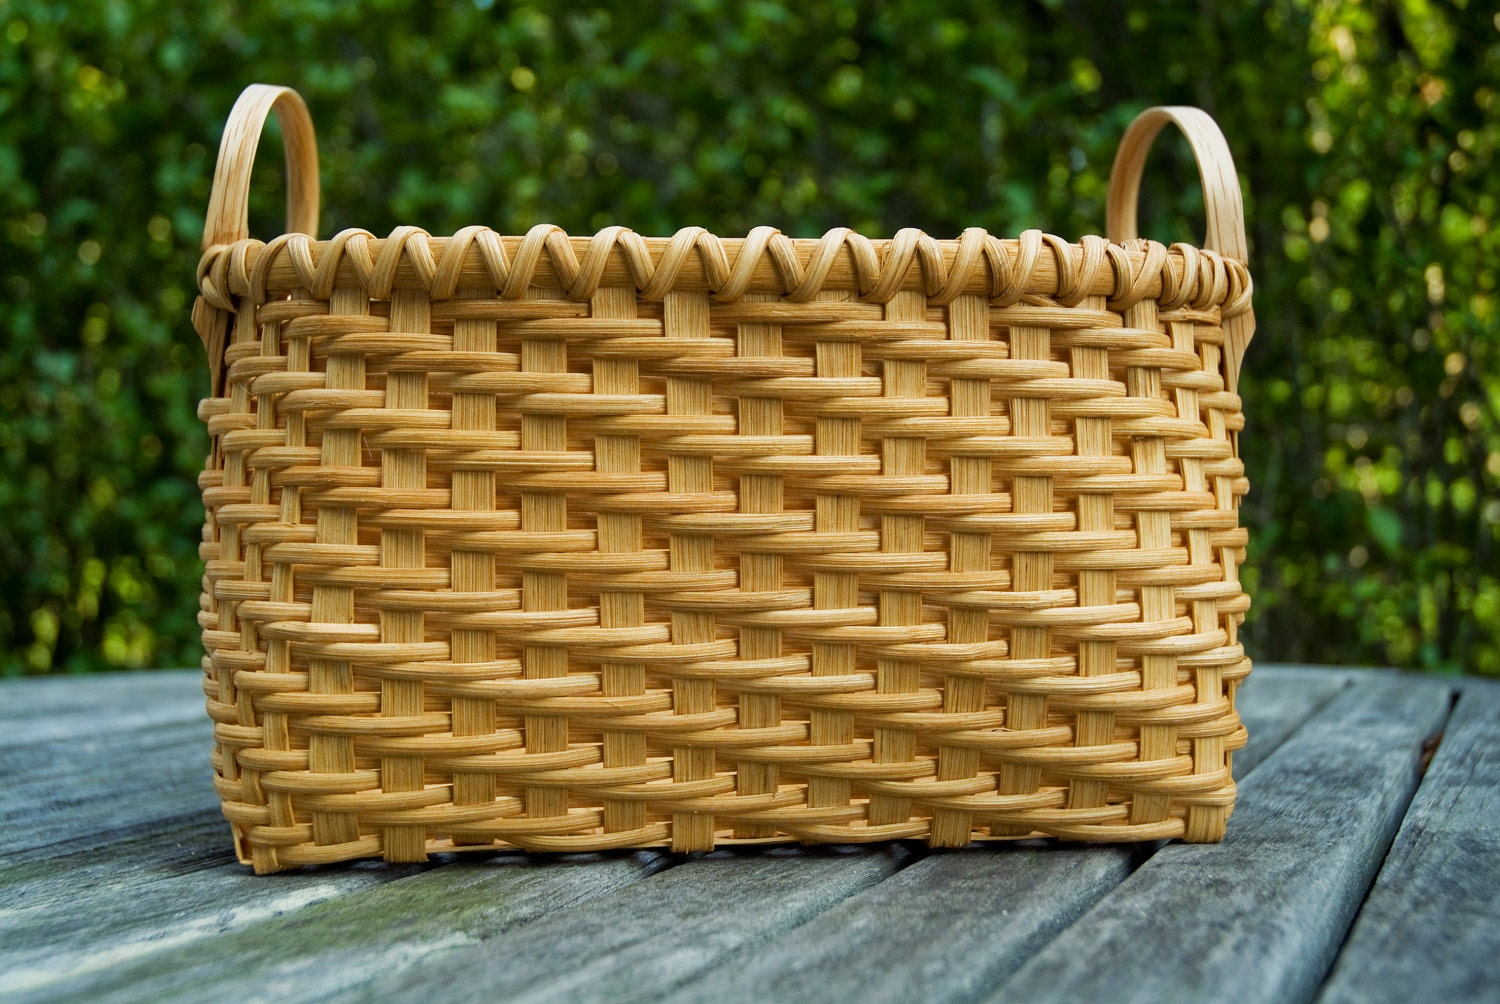 Basket Weaving Name : Traditional shaker spoon basket twill weave nina by